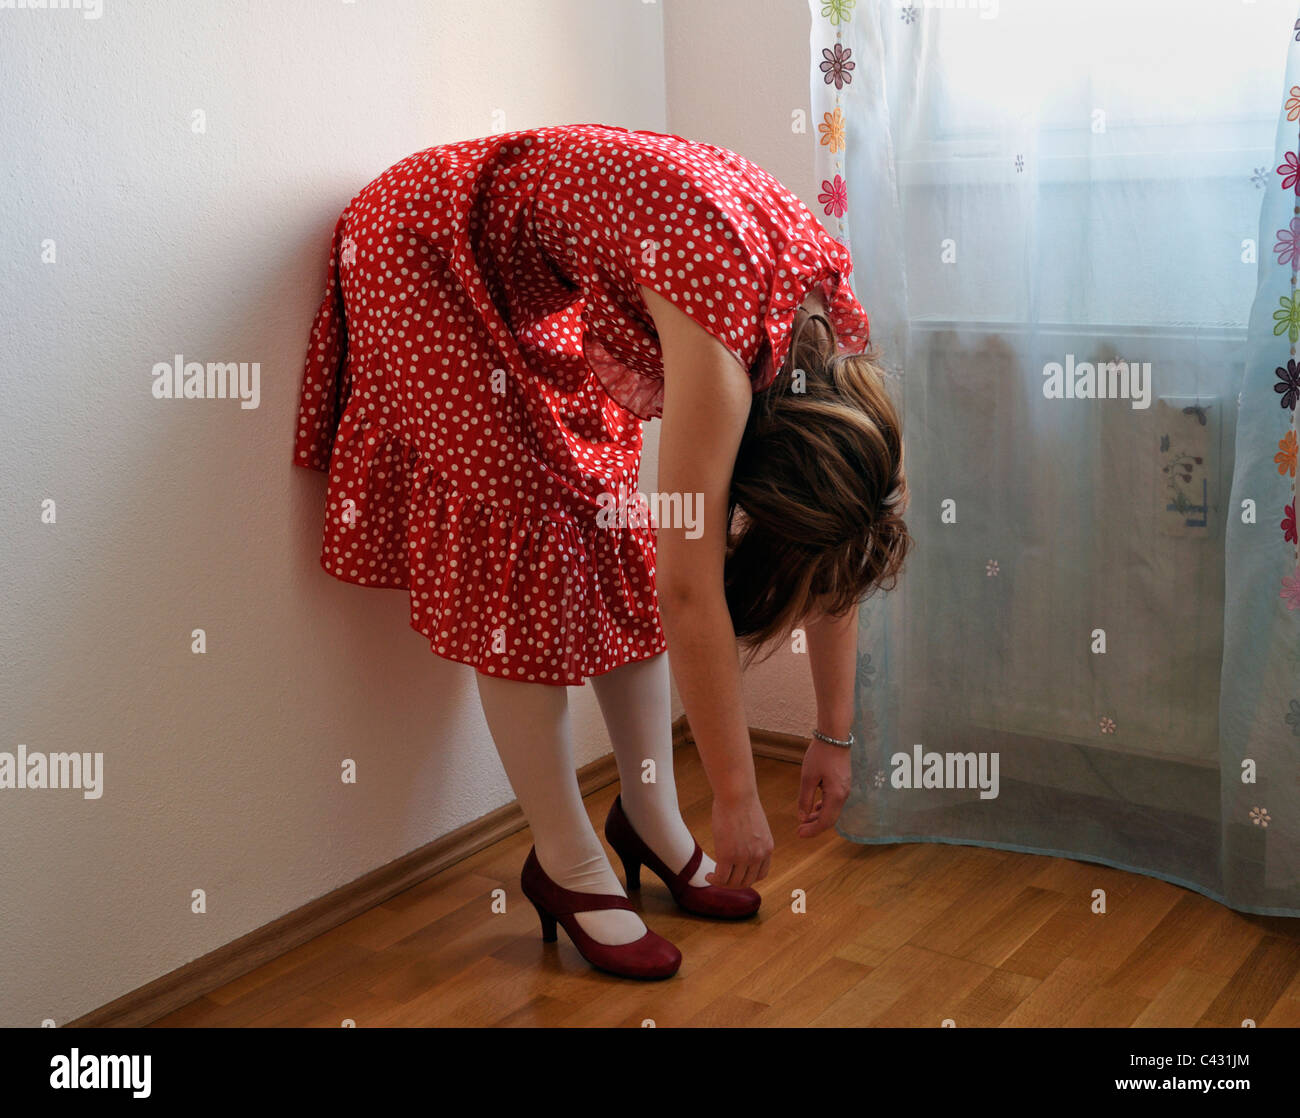 Young woman wearing polka dot dress bending over - Stock Image